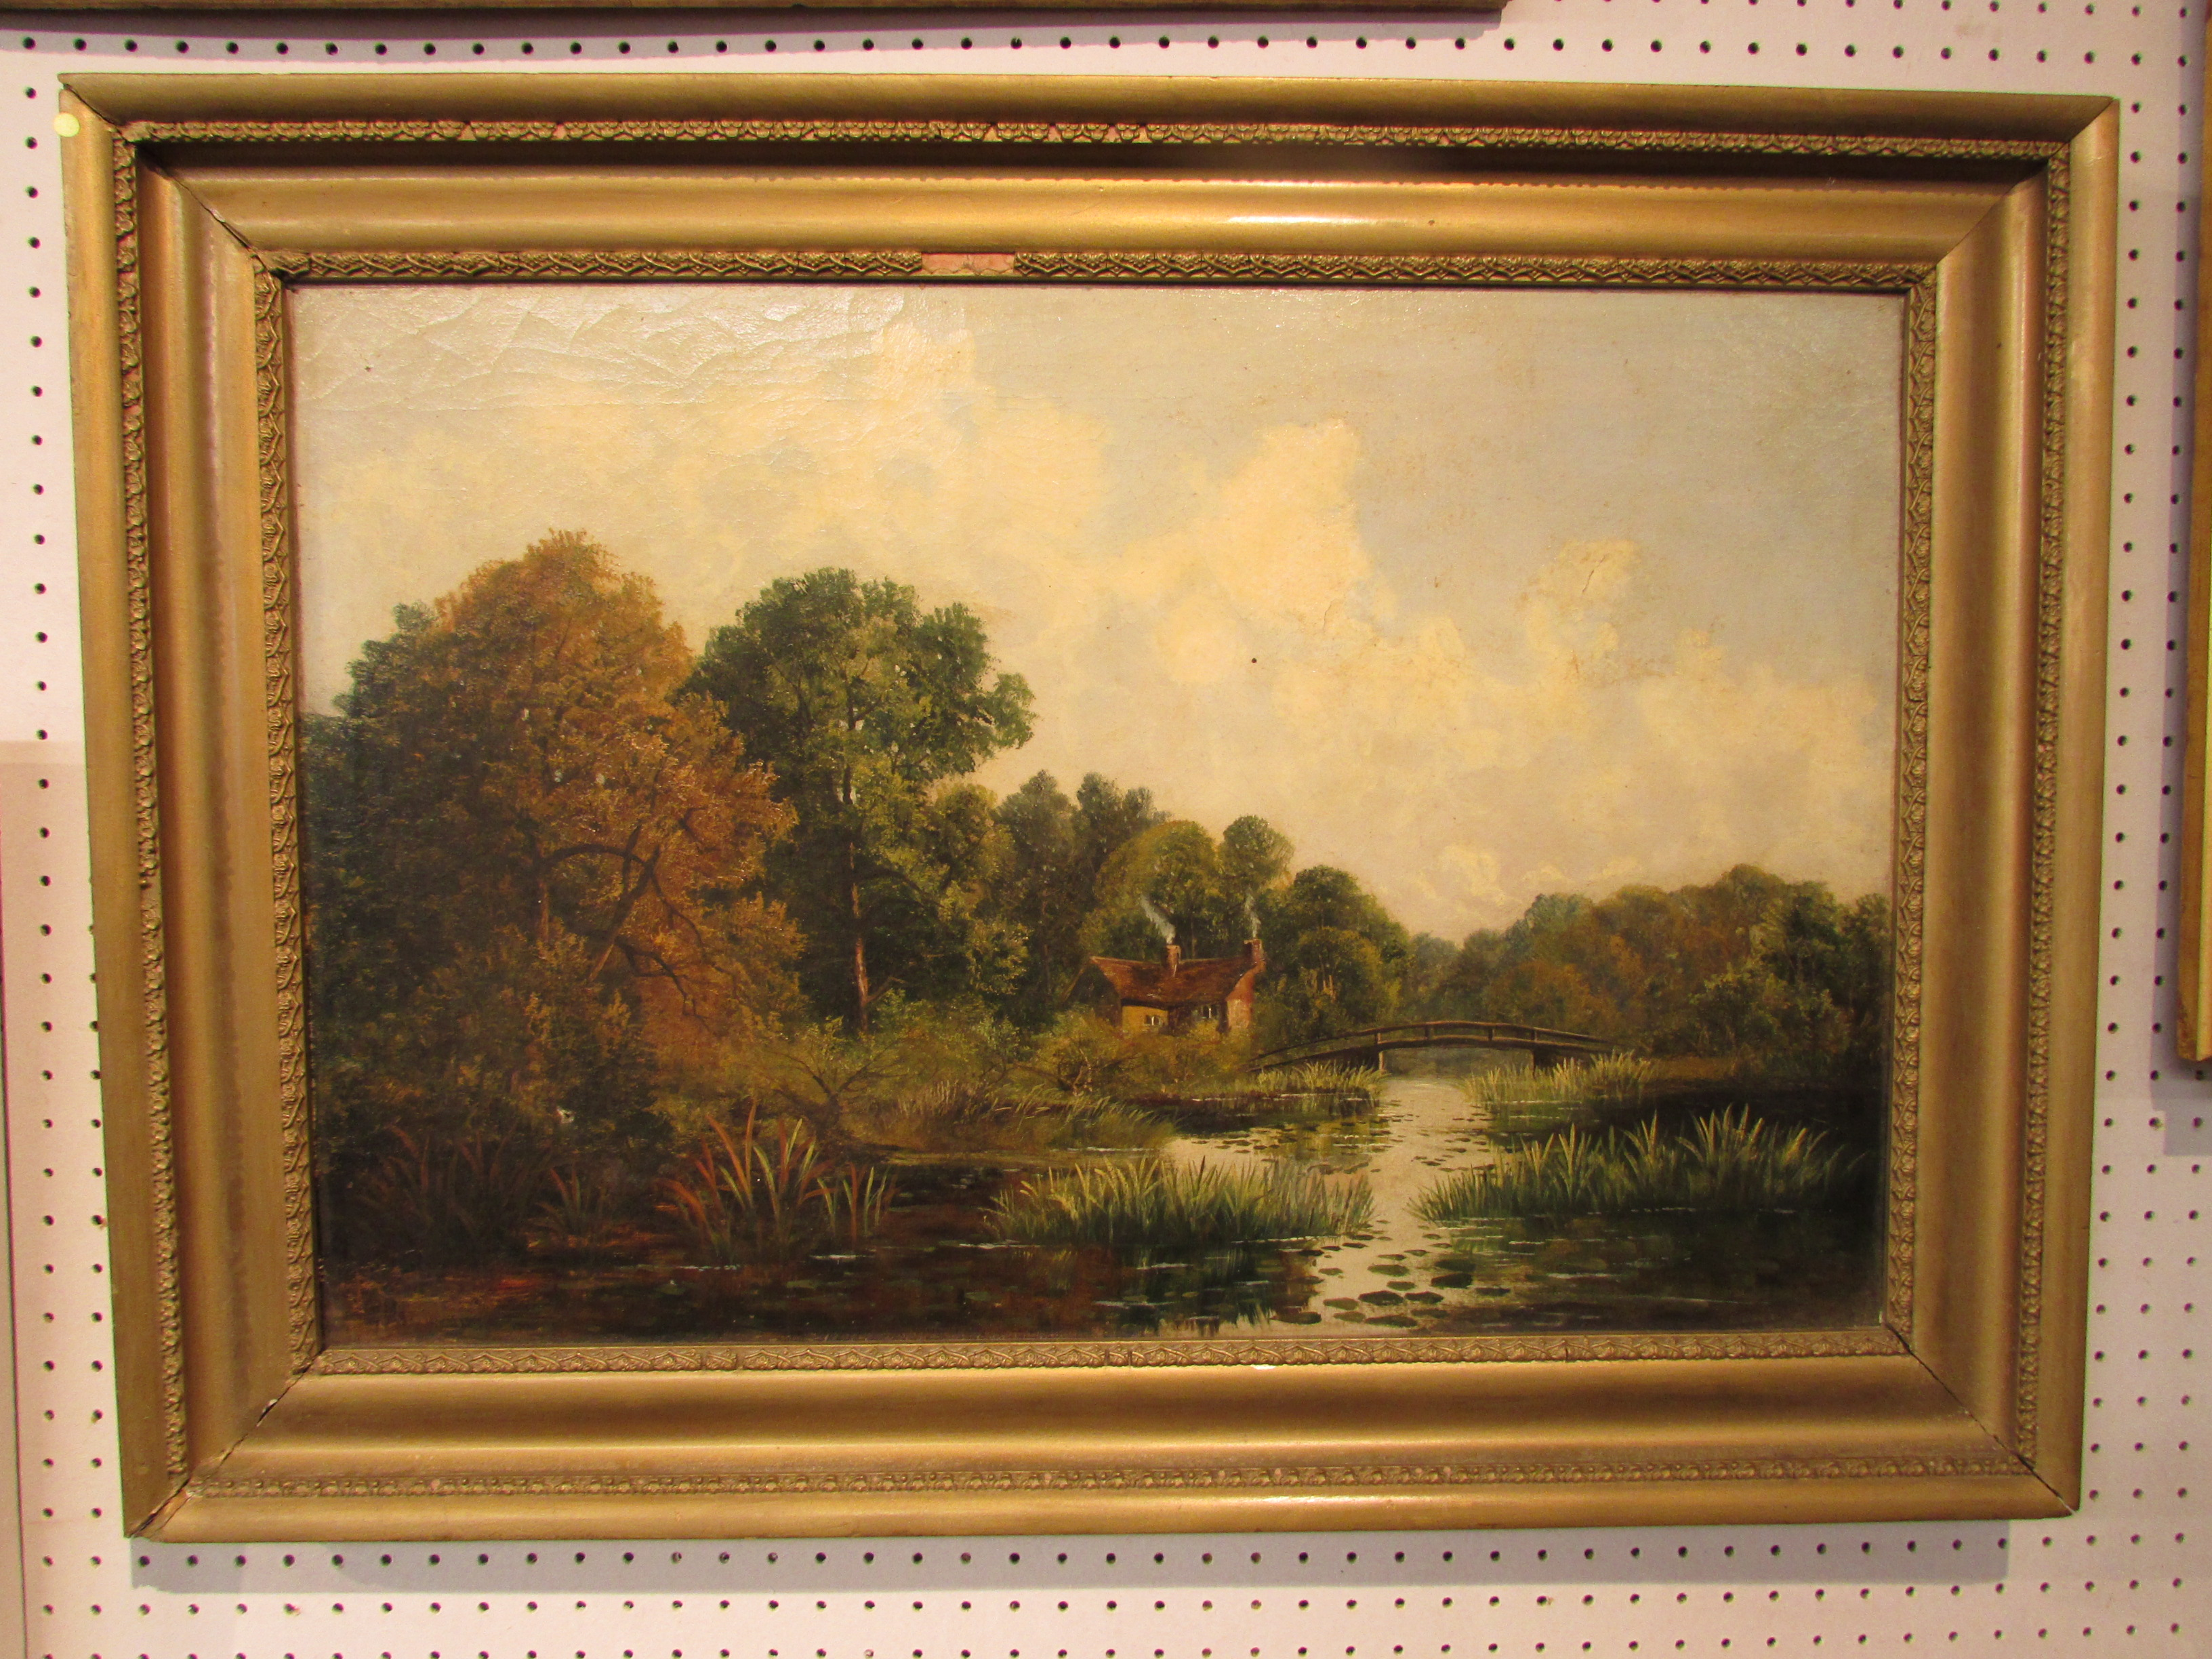 Lot 240 - Oil on canvas river landscape, indistinct signature lower left, (39cm x 59cm), in a gilt frame,